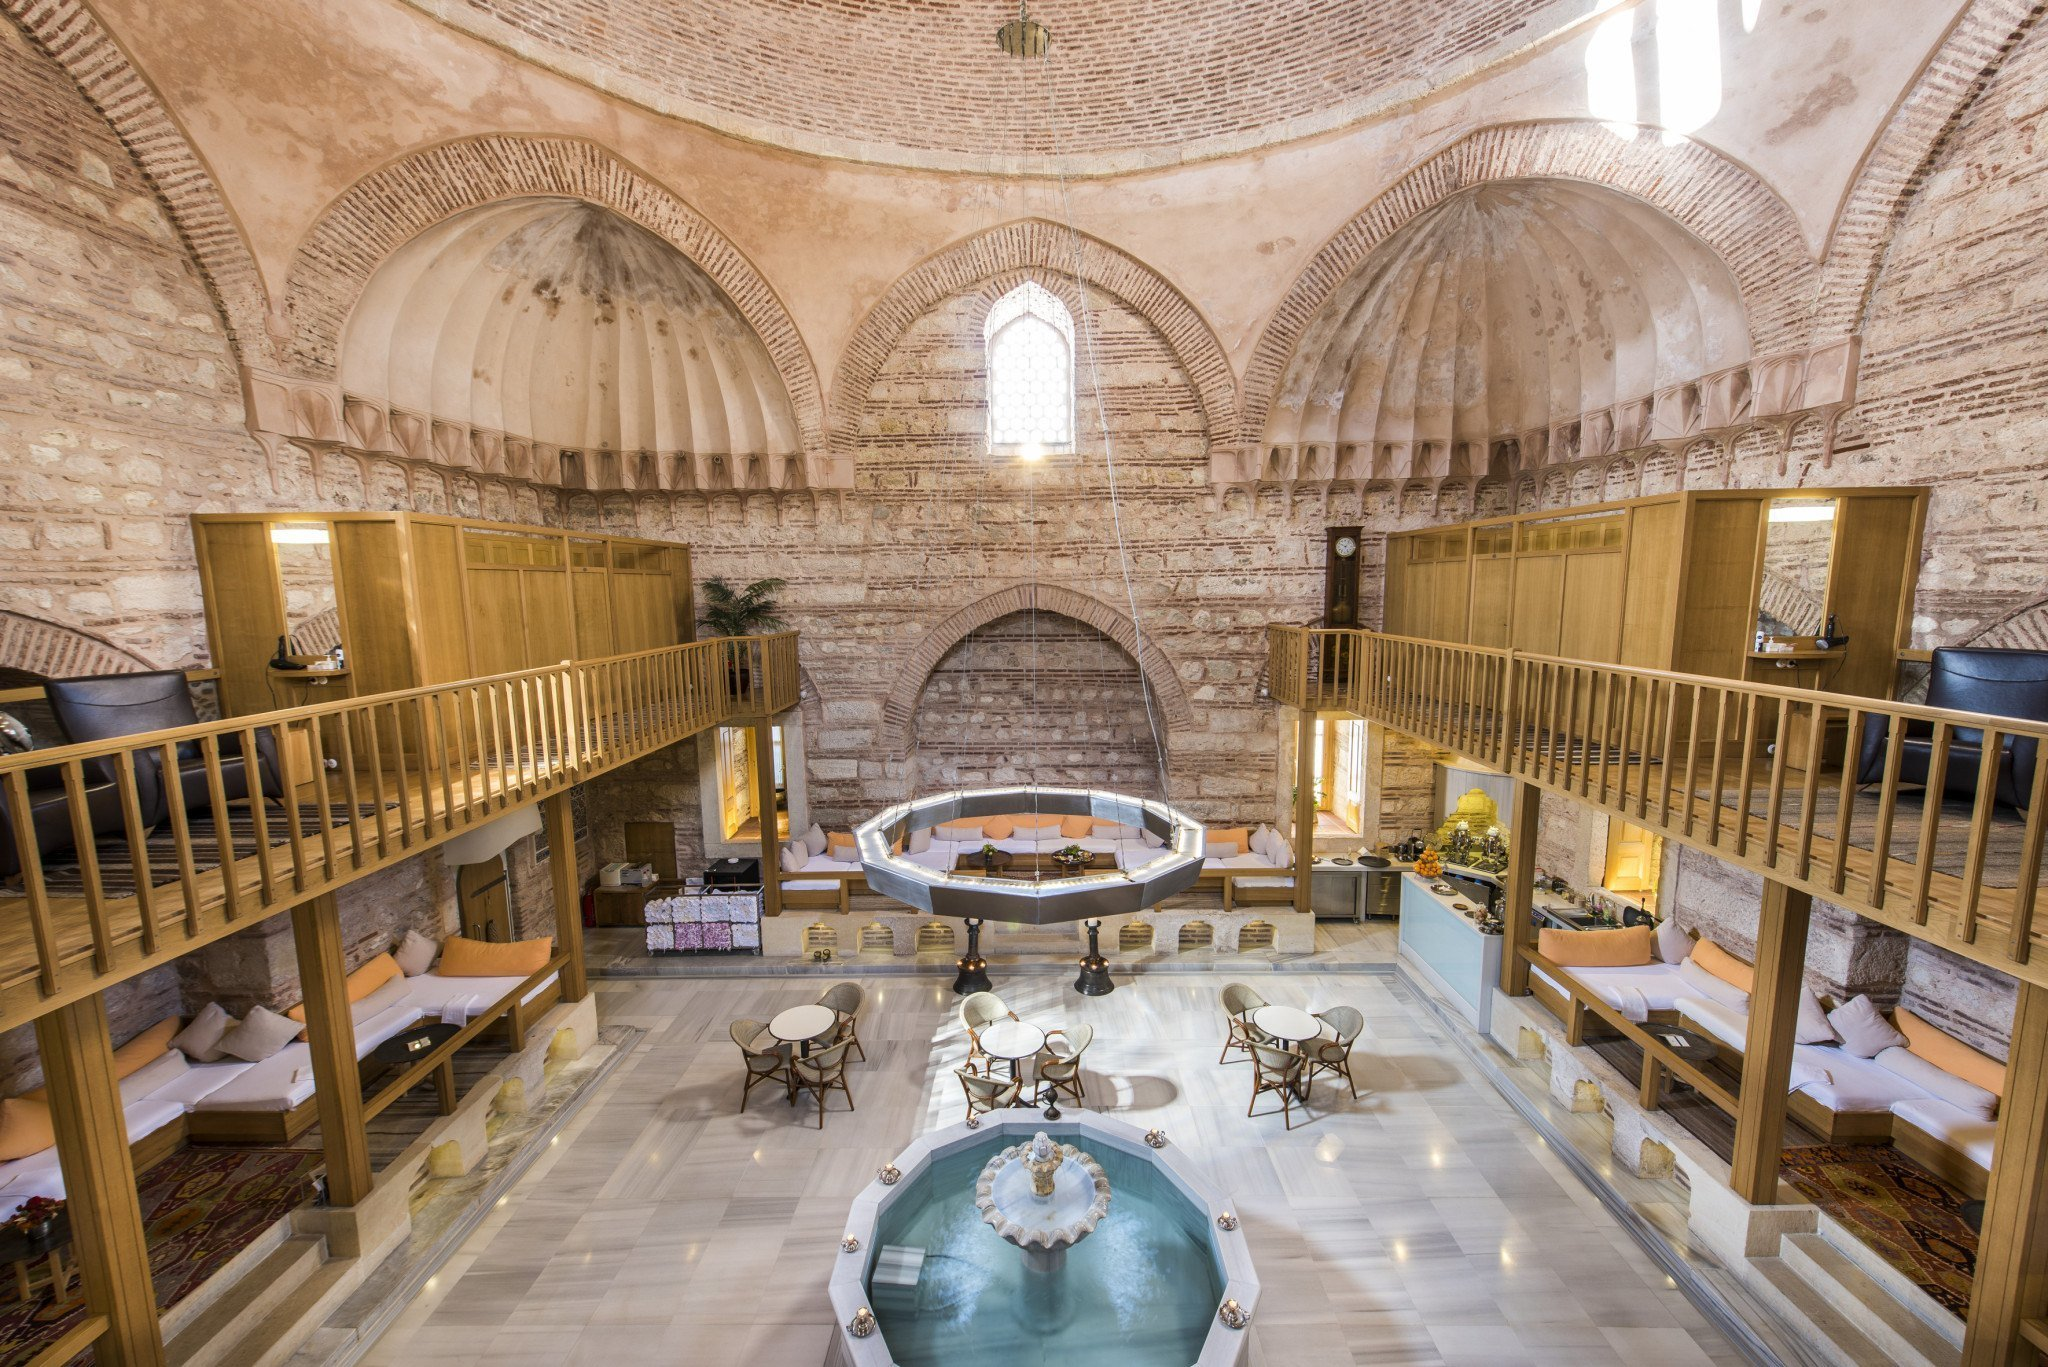 Turkish bath (hamam). What is it and what are its distinctive features